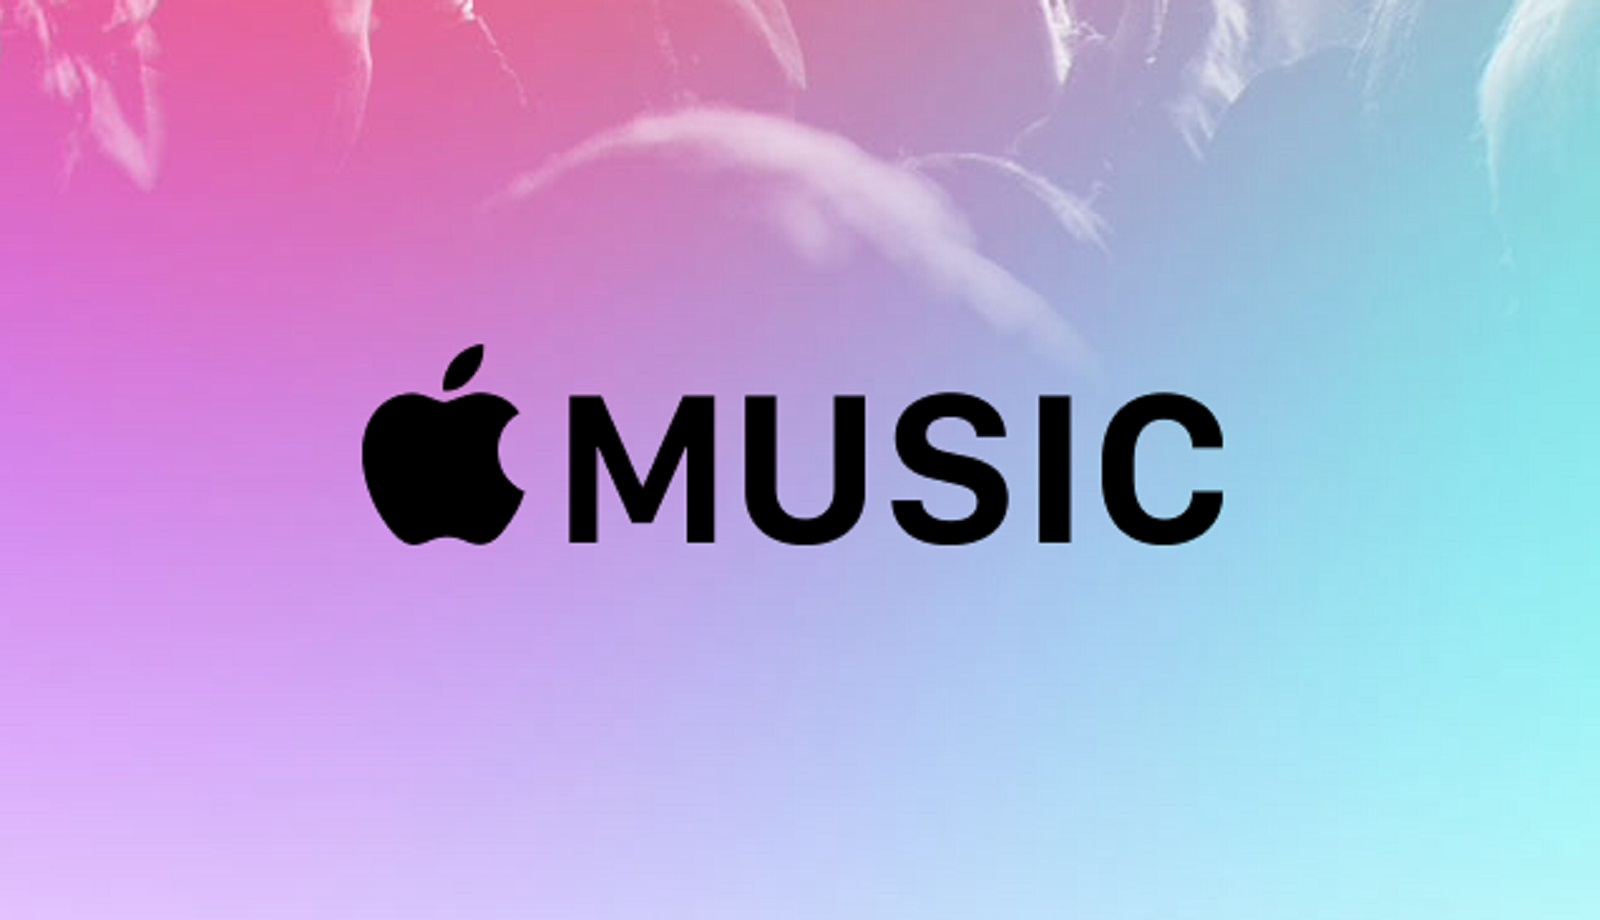 APPLE MUSIC 4 MONTHS FOR A NEW ACCOUNT OR 1 MONTH